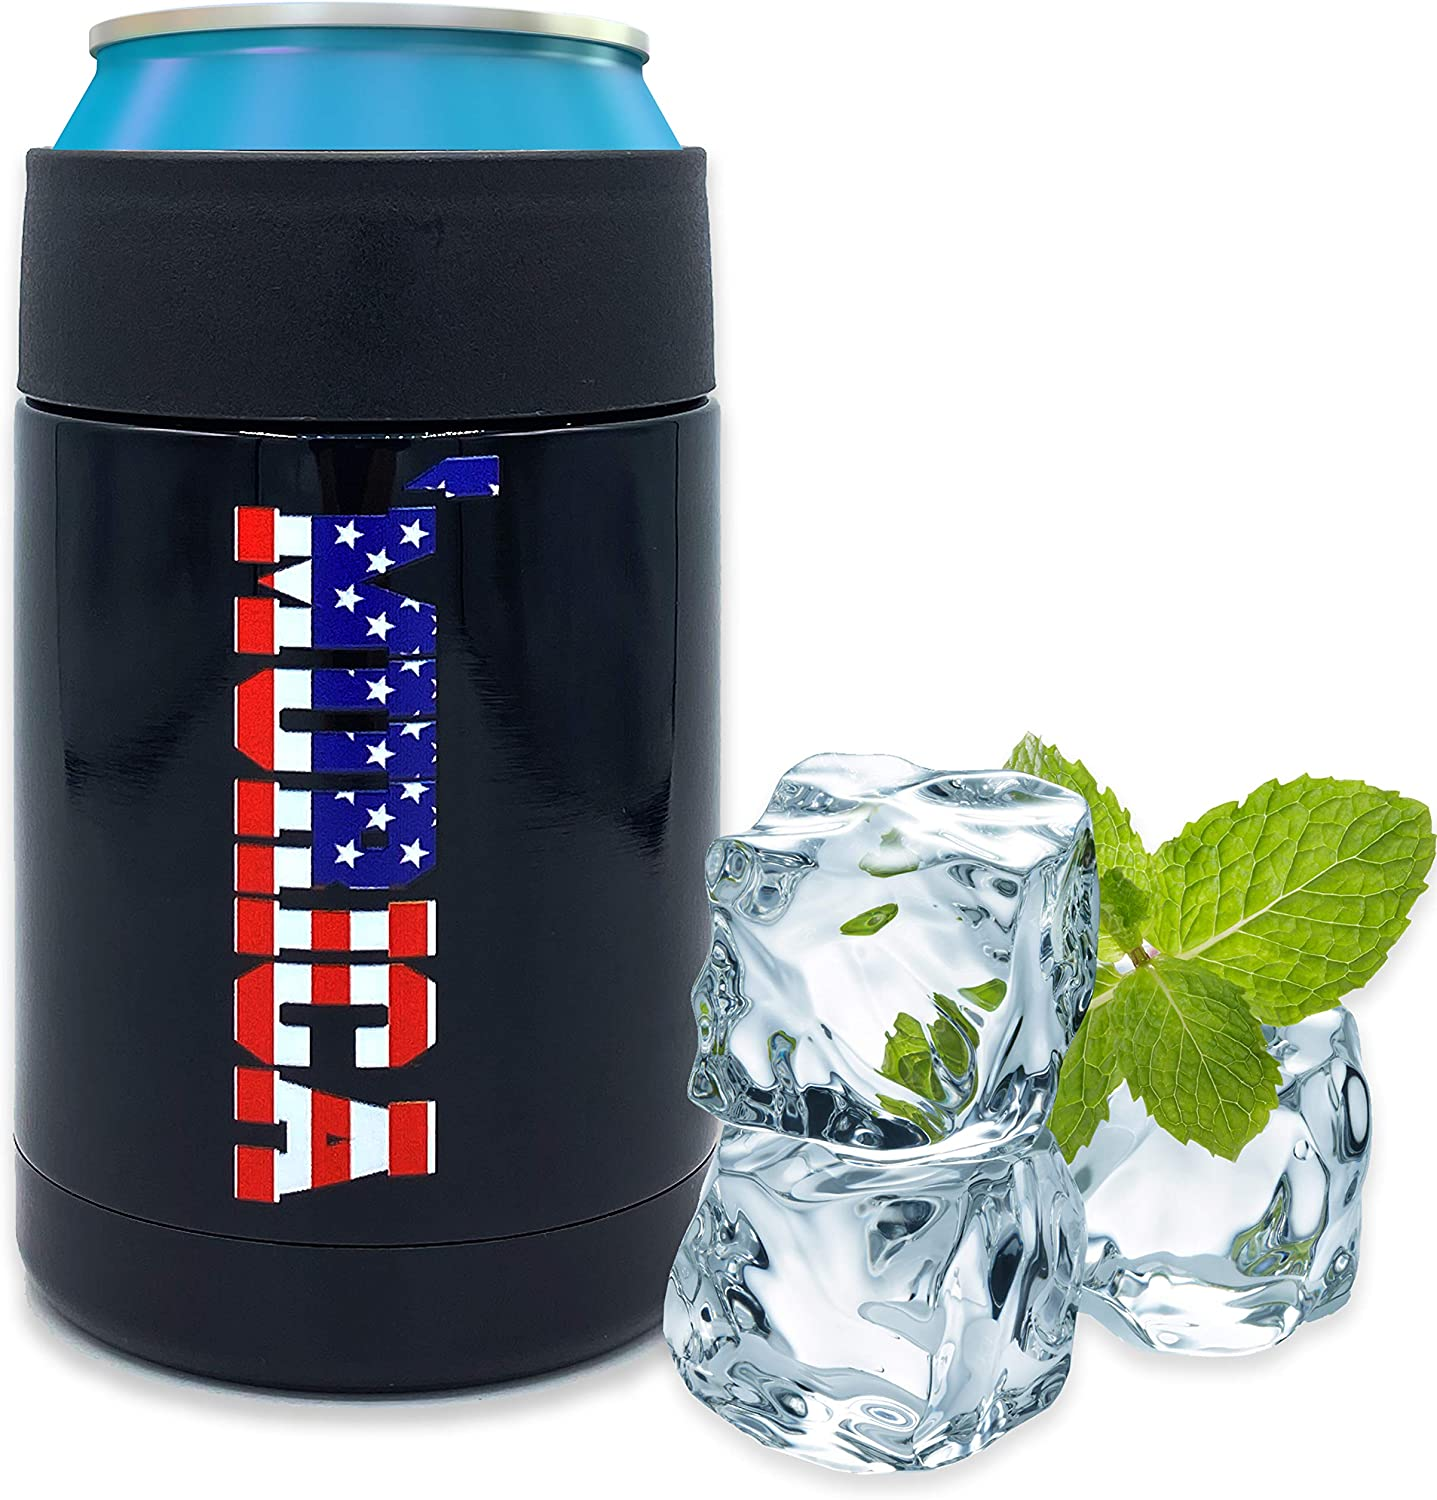 Beer Coozies for Cans - Murica American Flag Beer Can Insulator   12 oz Metal Can Coozie Insulated Can Cooler, Stainless Steel Drink Thermos Holder   Beverage Rambler Coolers, Dad Coozy Gift Cozies